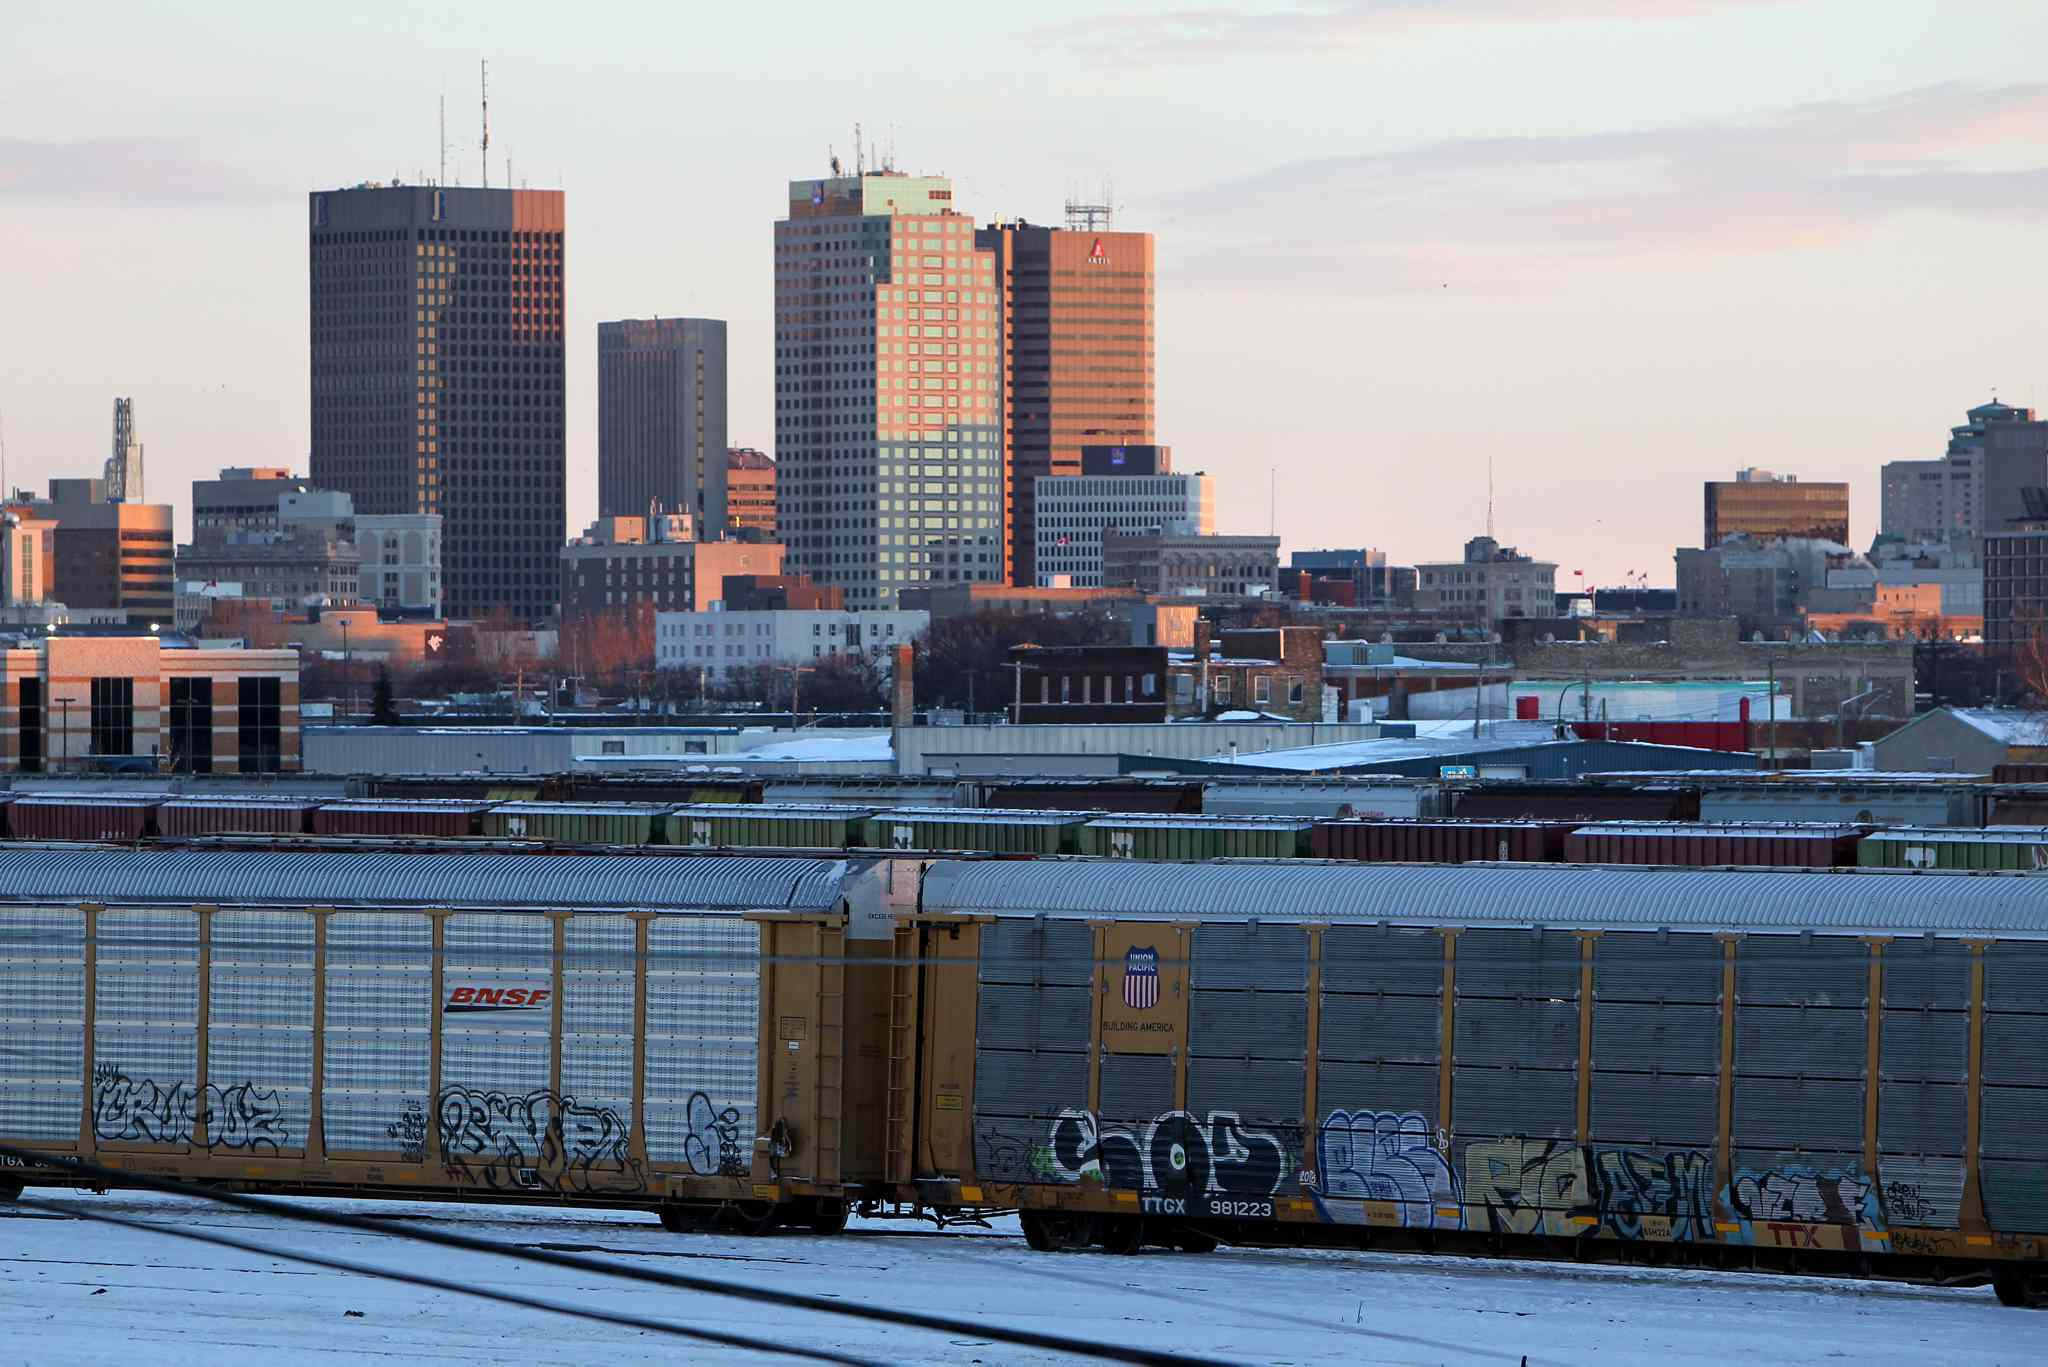 View of the CP rail yards in Winnipeg's North End.